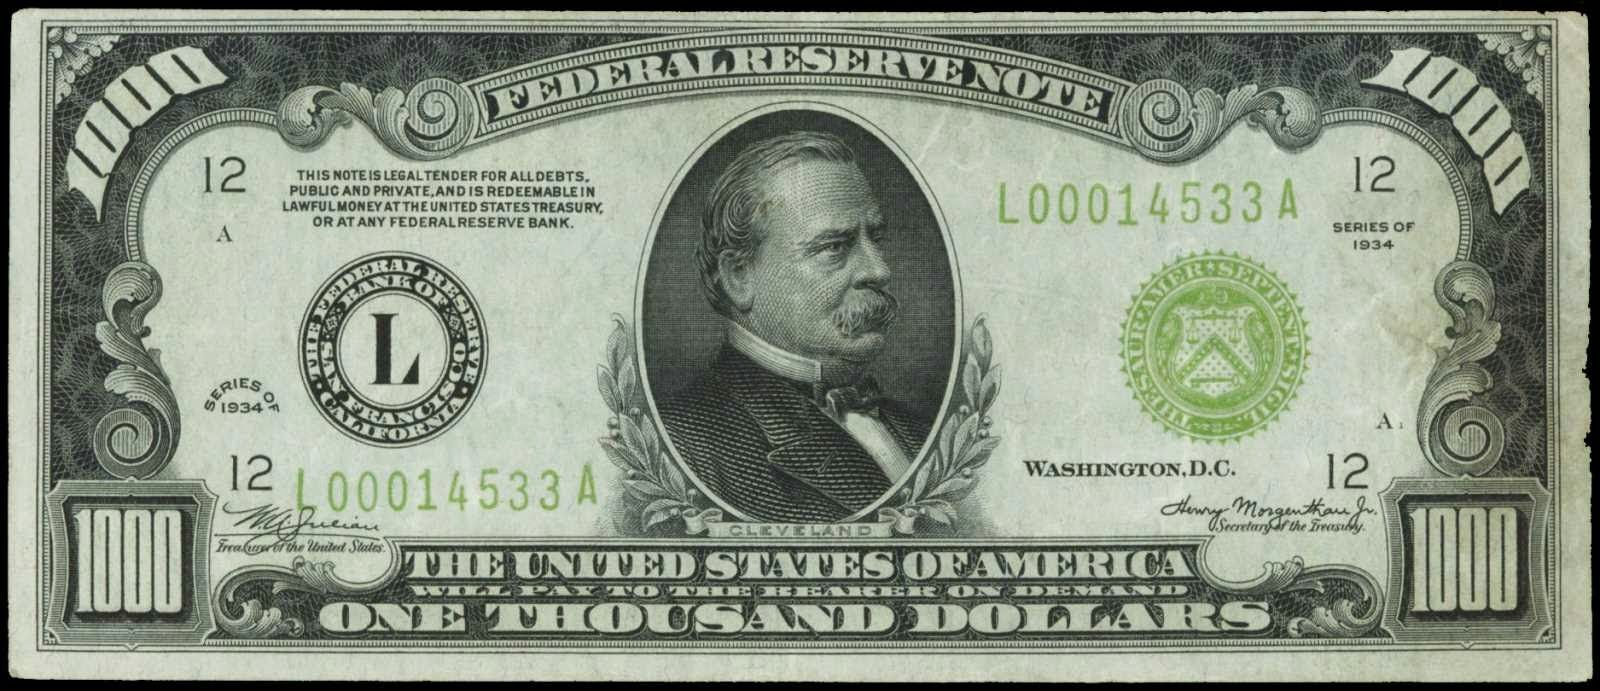 1934 $1000 Federal Reserve Note. L - Bank of San Francisco Portrait of Grover Cleveland (22nd & 24th U.S. President)